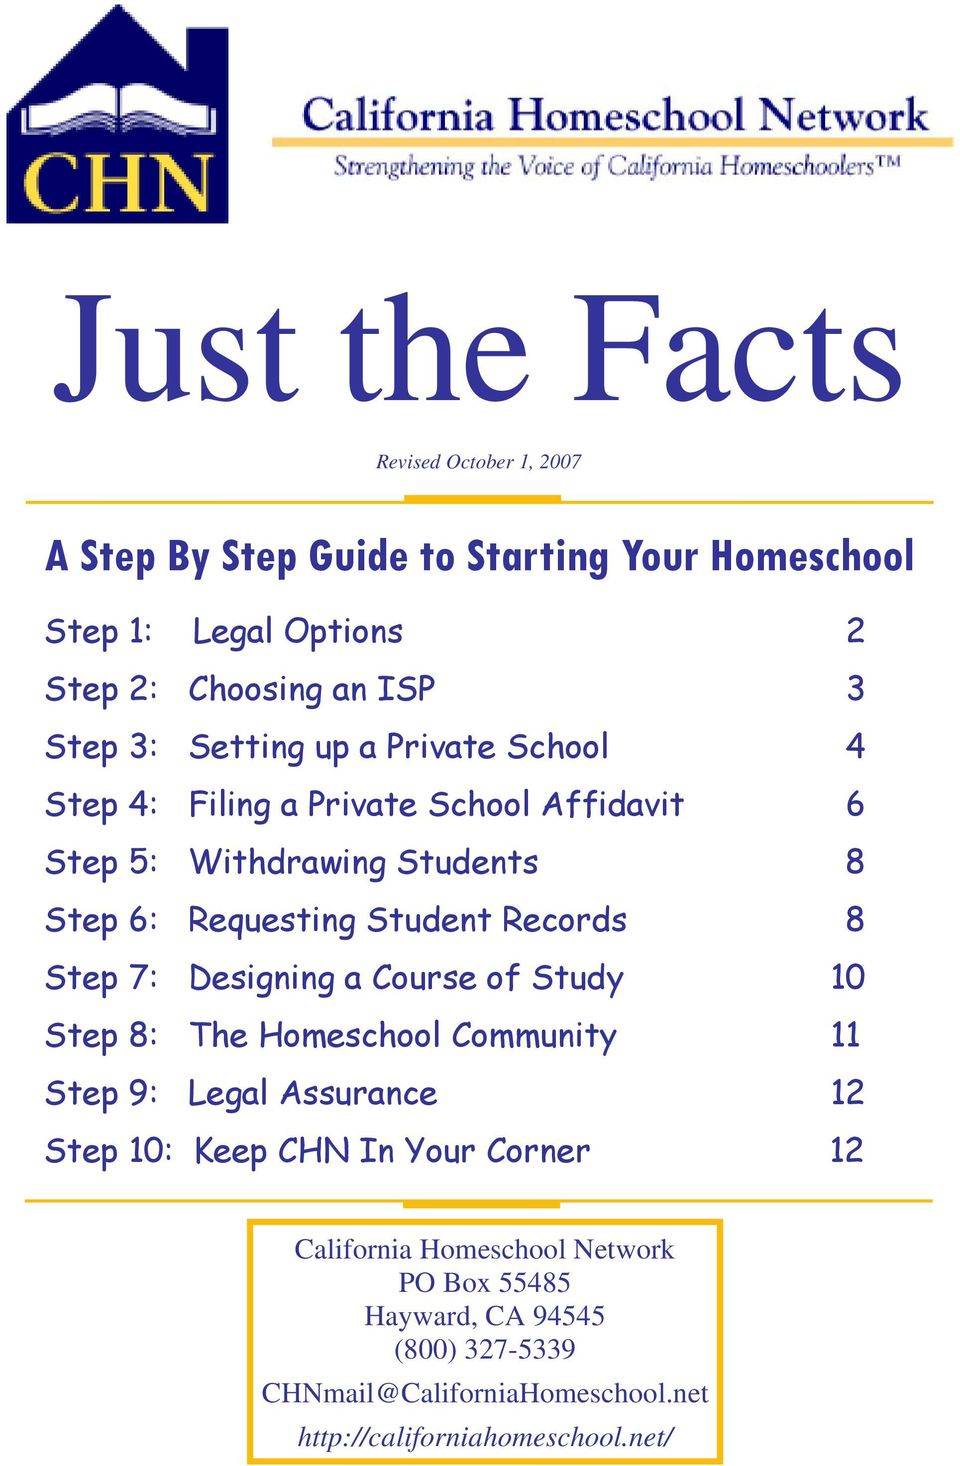 Records 8 Step 7: Designing a Course of Study 10 Step 8: The Homeschool Community 11 Step 9: Legal Assurance 12 Step 10: Keep CHN In Your